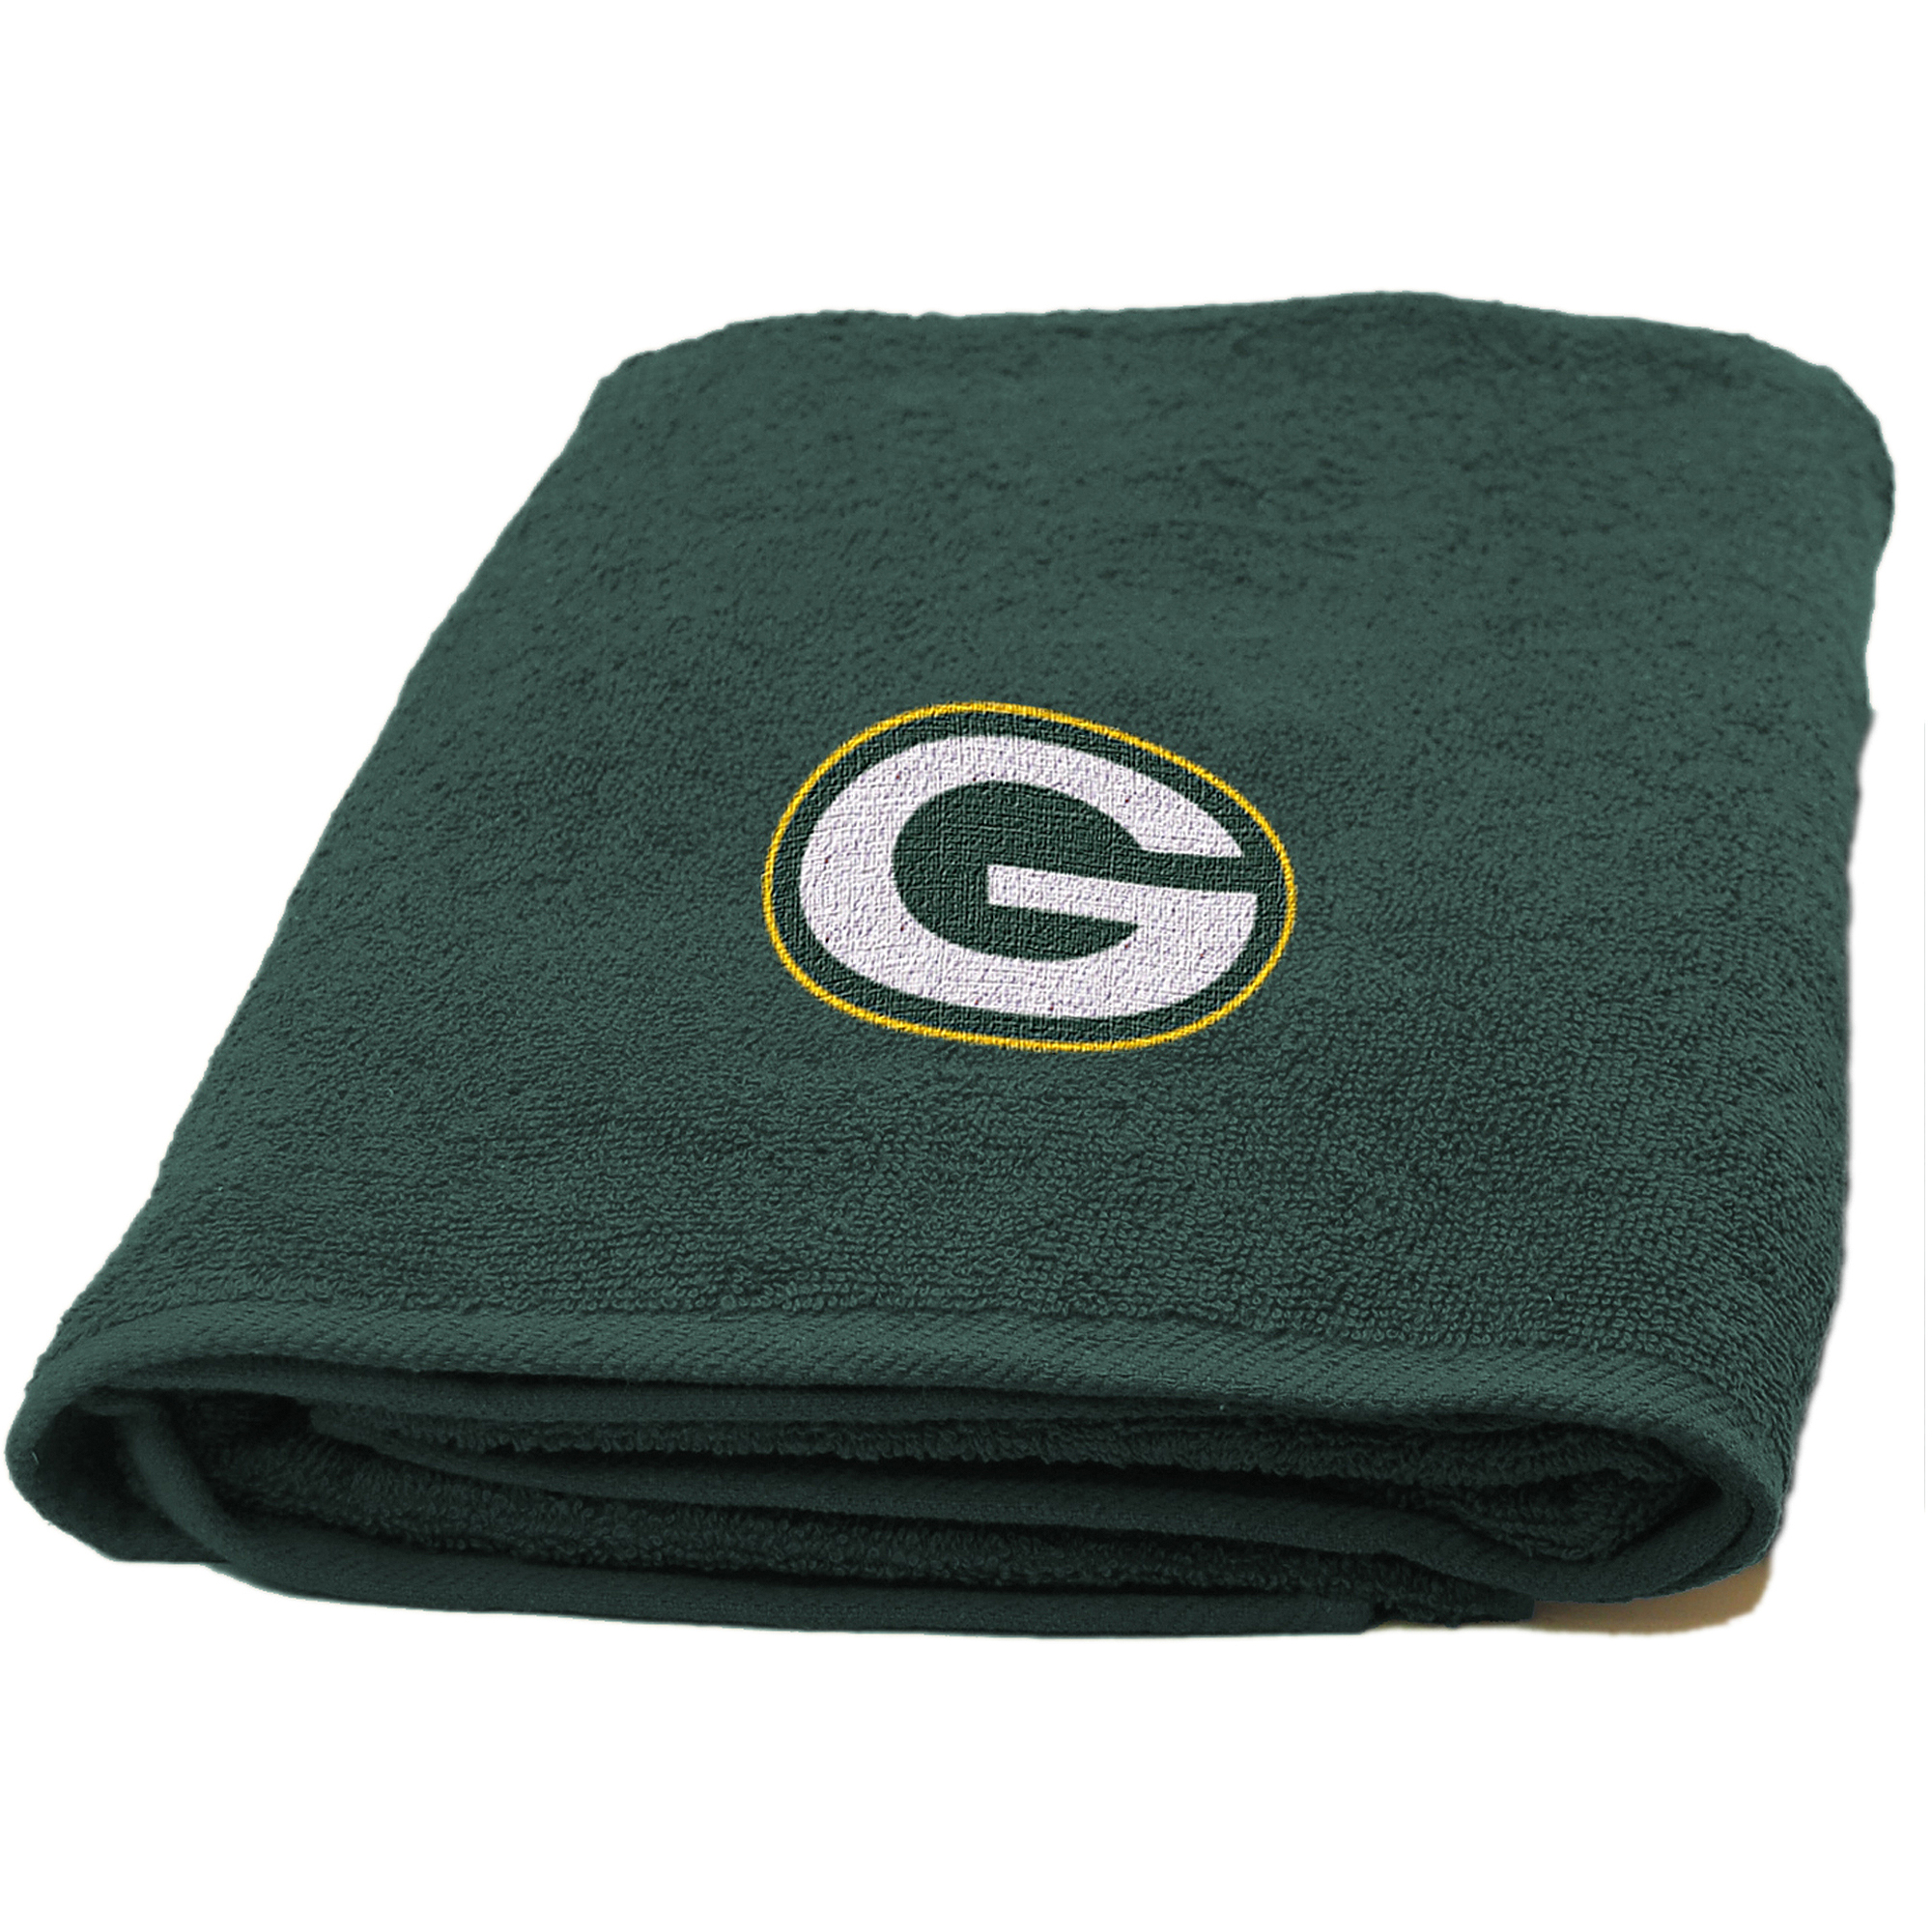 NFL Green Bay Packers Decorative Bath Collection Bath Towel